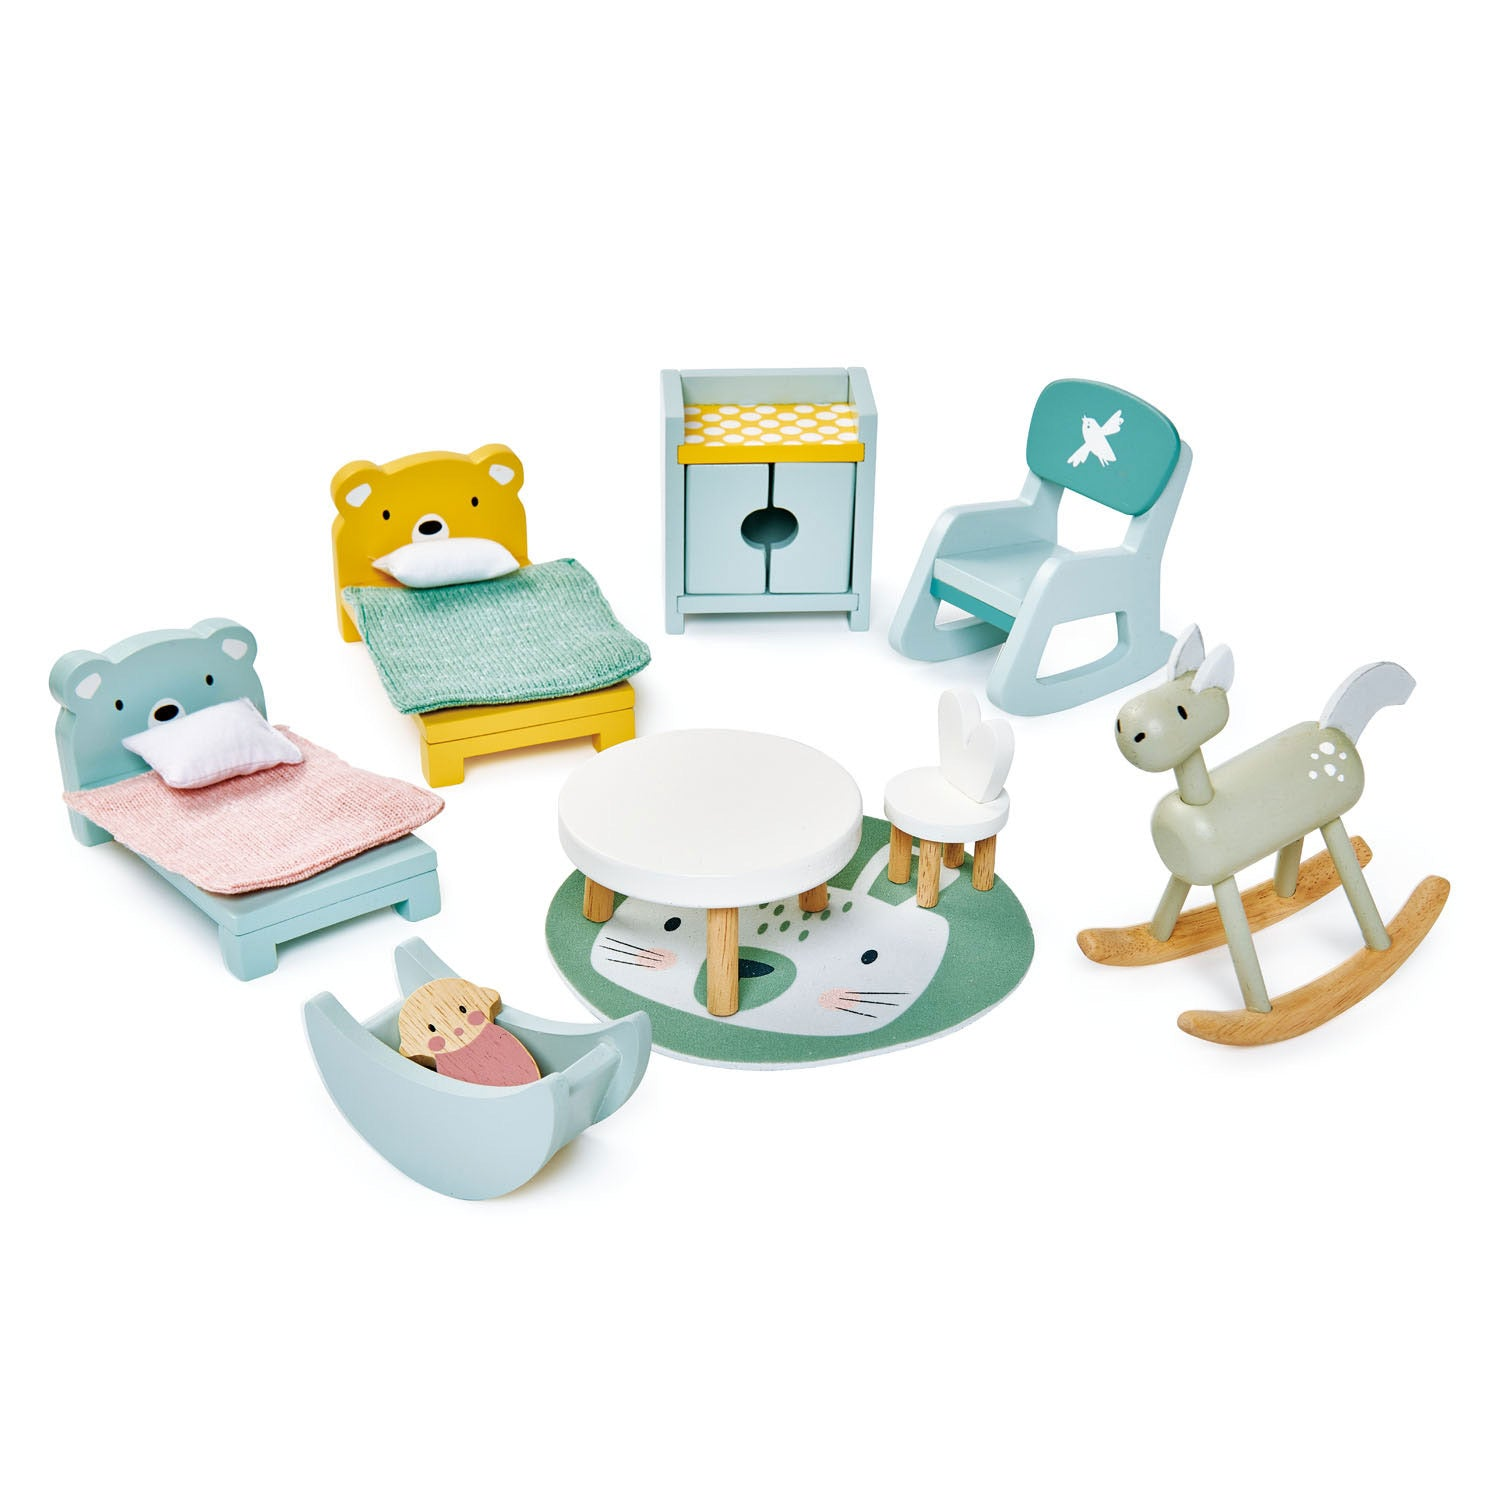 Dovetail Kids' Room Furniture Set (Hot Favourite!)